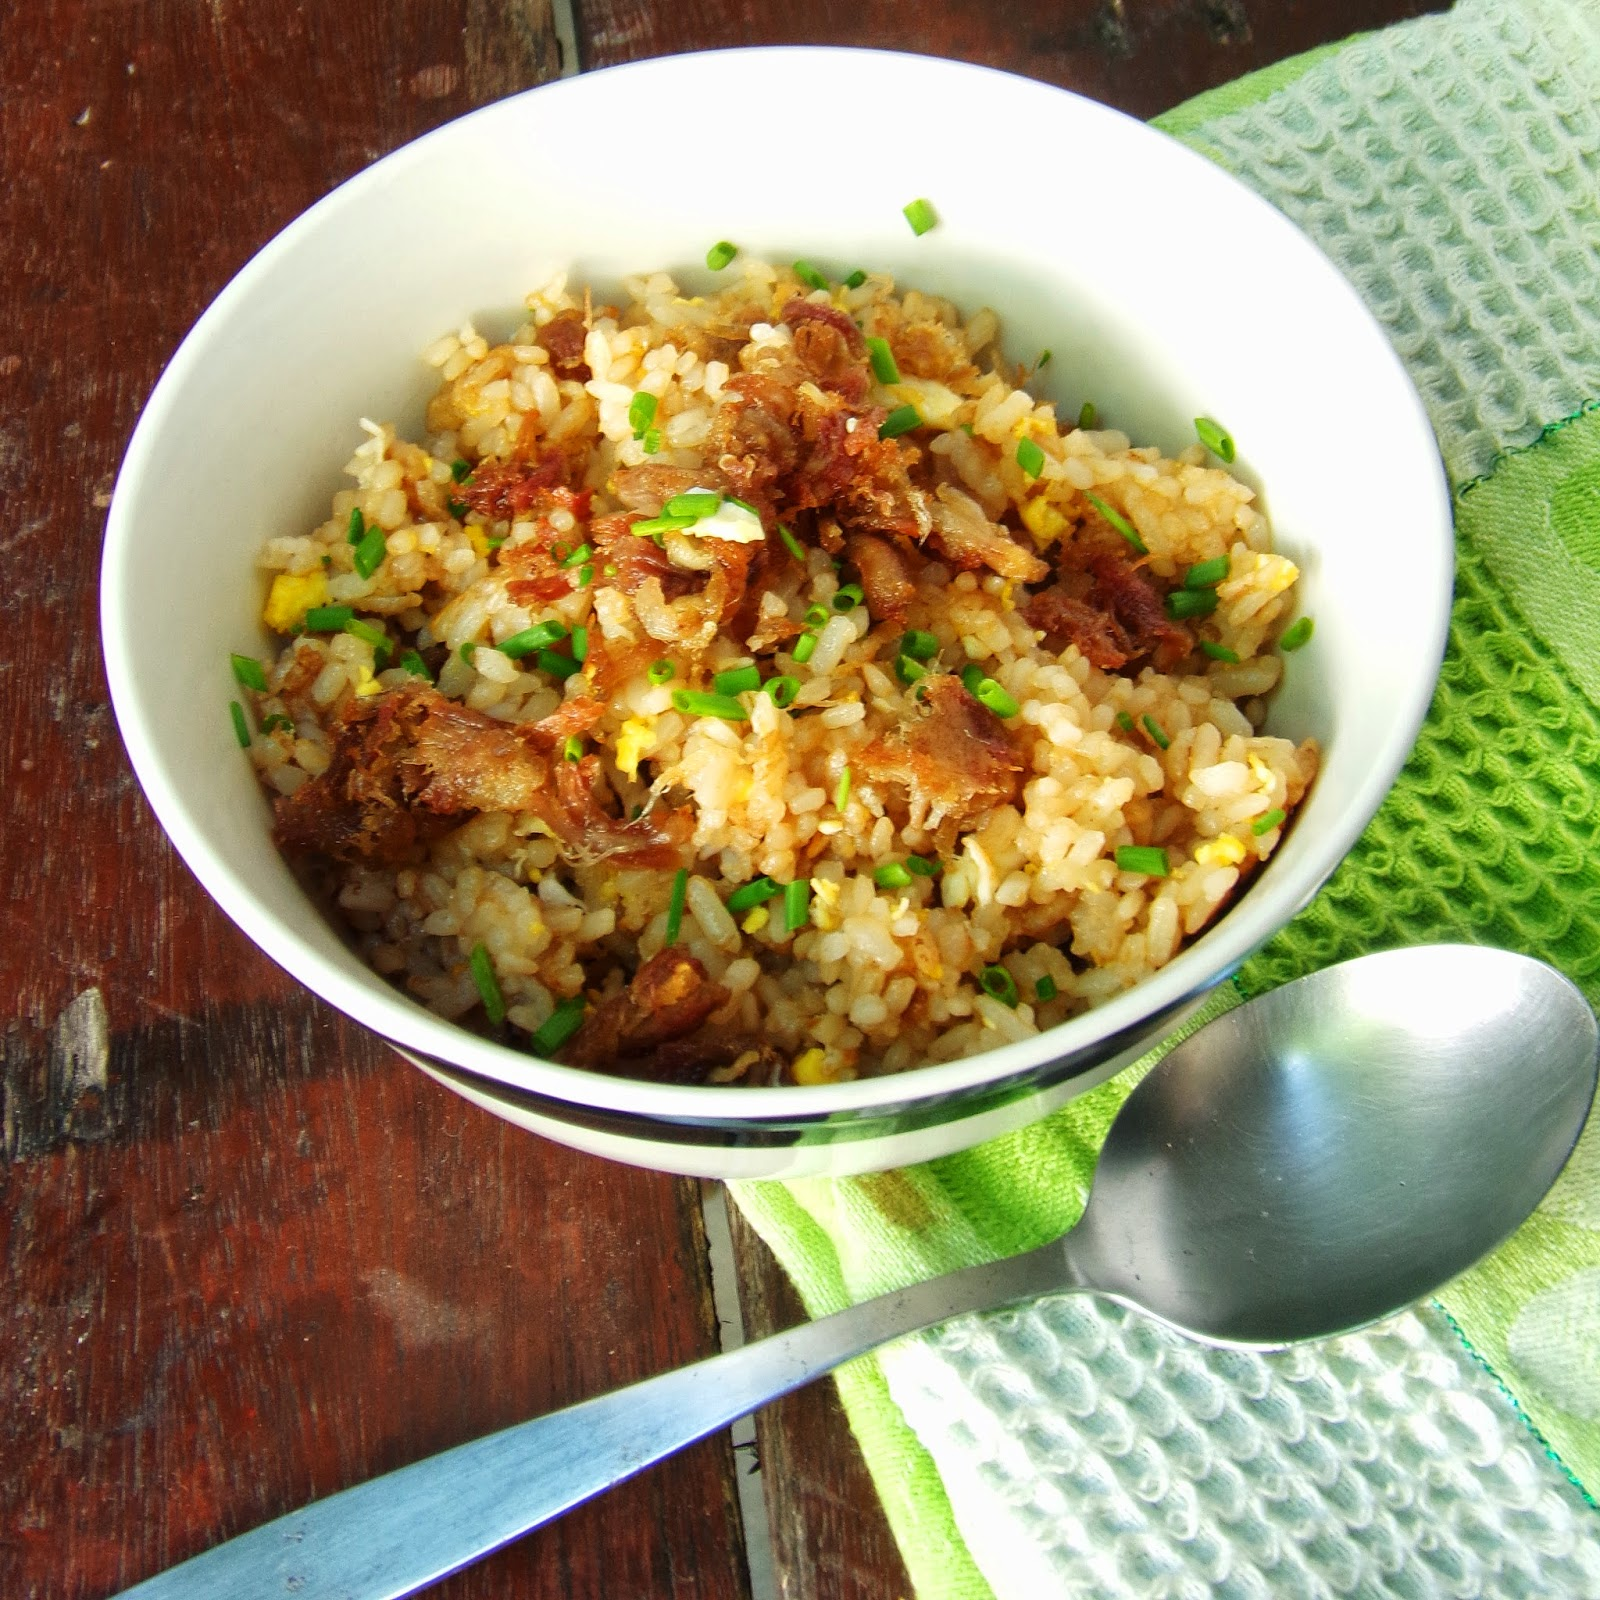 budbud fried rice, budbud rice, budbod fried rice, budbod rice